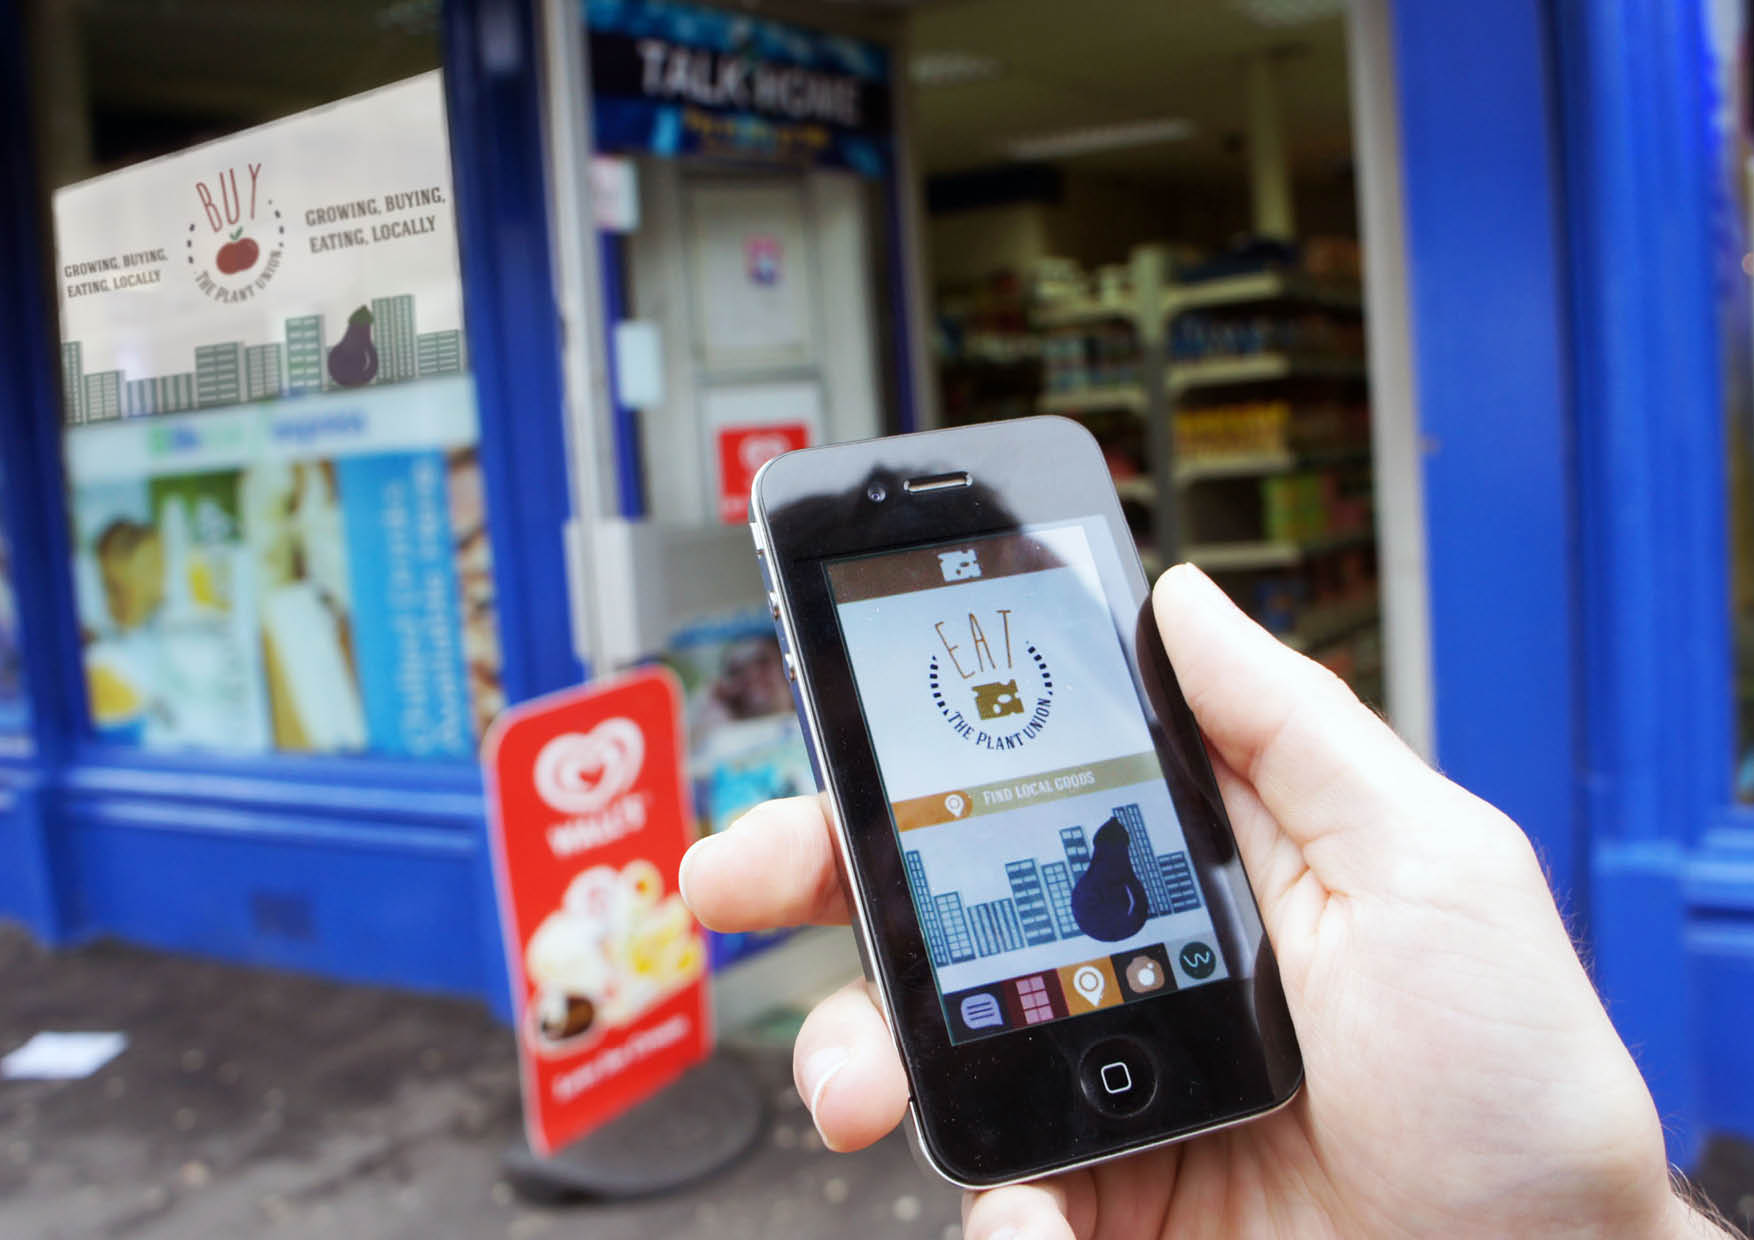 """Using mobile application to find """"The Plant Union"""" in your local corner shop and seeing what is available."""